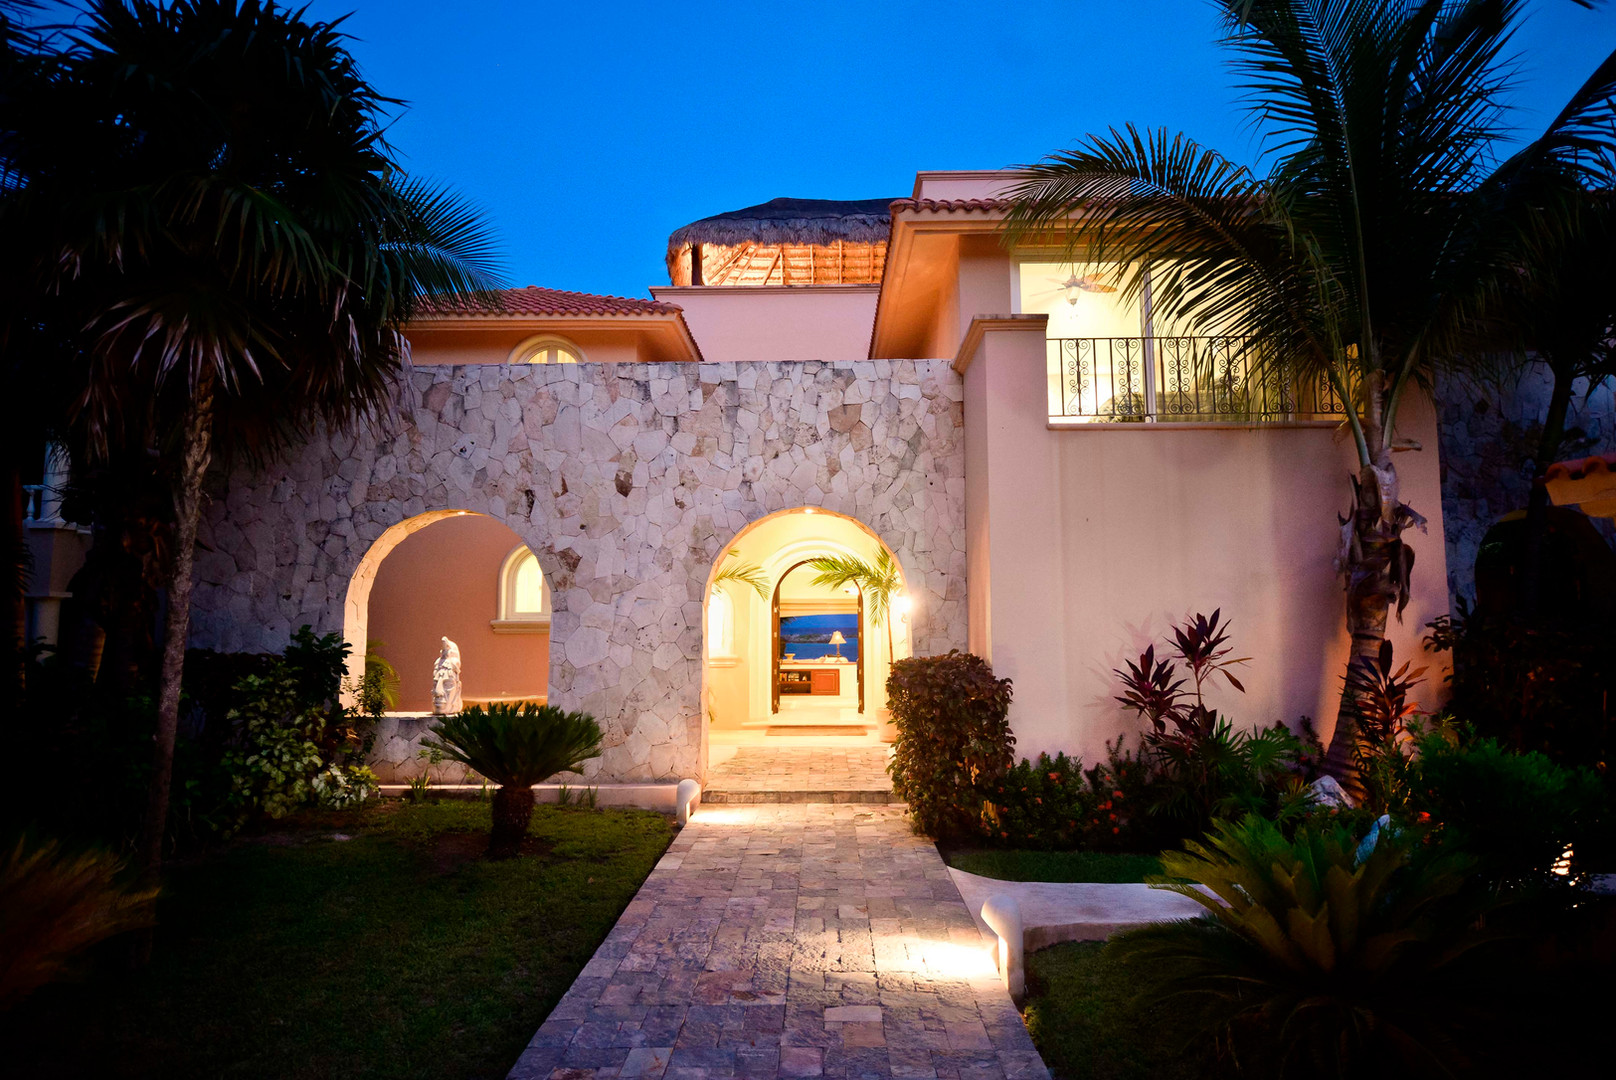 A unique Beach Residence at one of the most thought after beaches in Puerto Aventuras, a Gated Community between Playa del Carmen and Tulum.   9,090 s.f. of construction, 0.387 acres, 68 feet of beachfront. Four bedrooms, TV room, four half bathrooms, open living and dining area, fully equipped kitchen, two storage rooms, washer/dryer room, roof garden with palapa and lounge area. Pool, BBQ area, wooden sun deck, private beach in a protected bay. Covered three-car garage and plenty additional parking space. Fully equipped bungalow for onsite service personnel. Backup electricity generator. Very well maintained, excellent rental income!